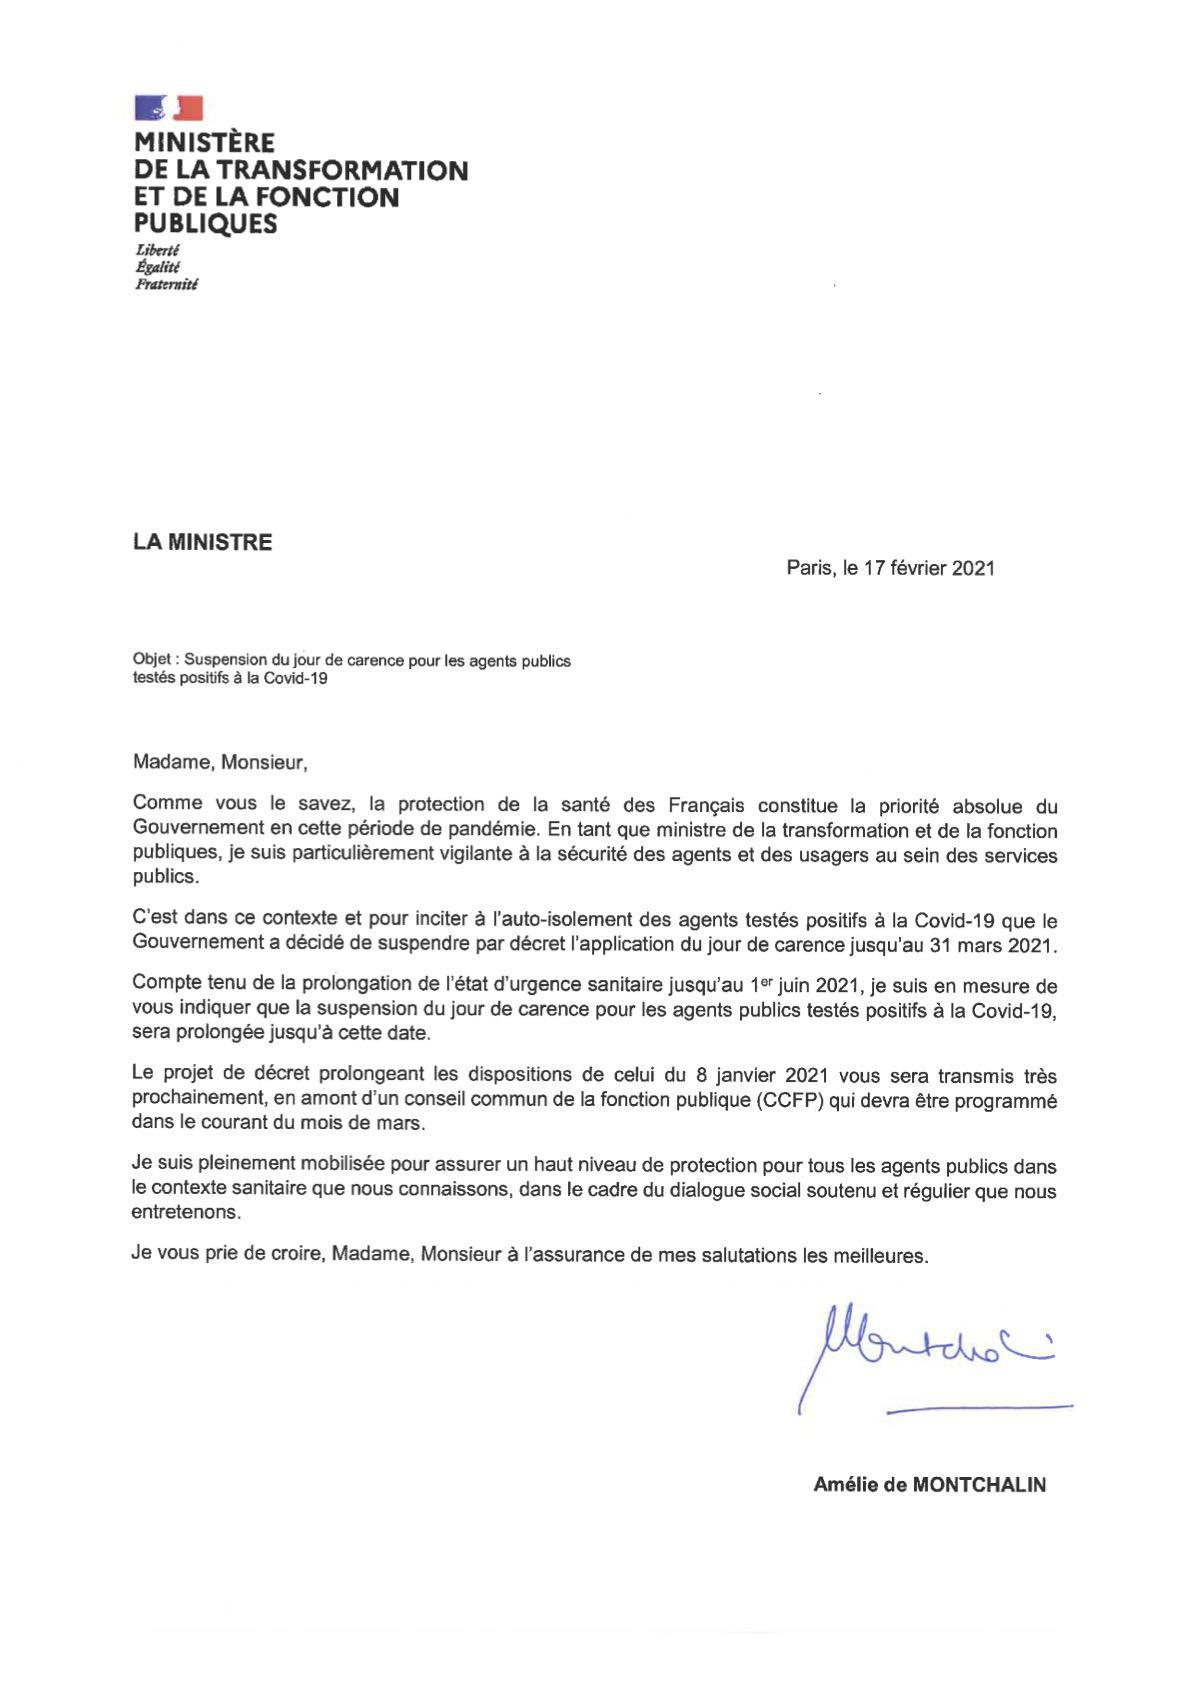 Suspension du jour de carence